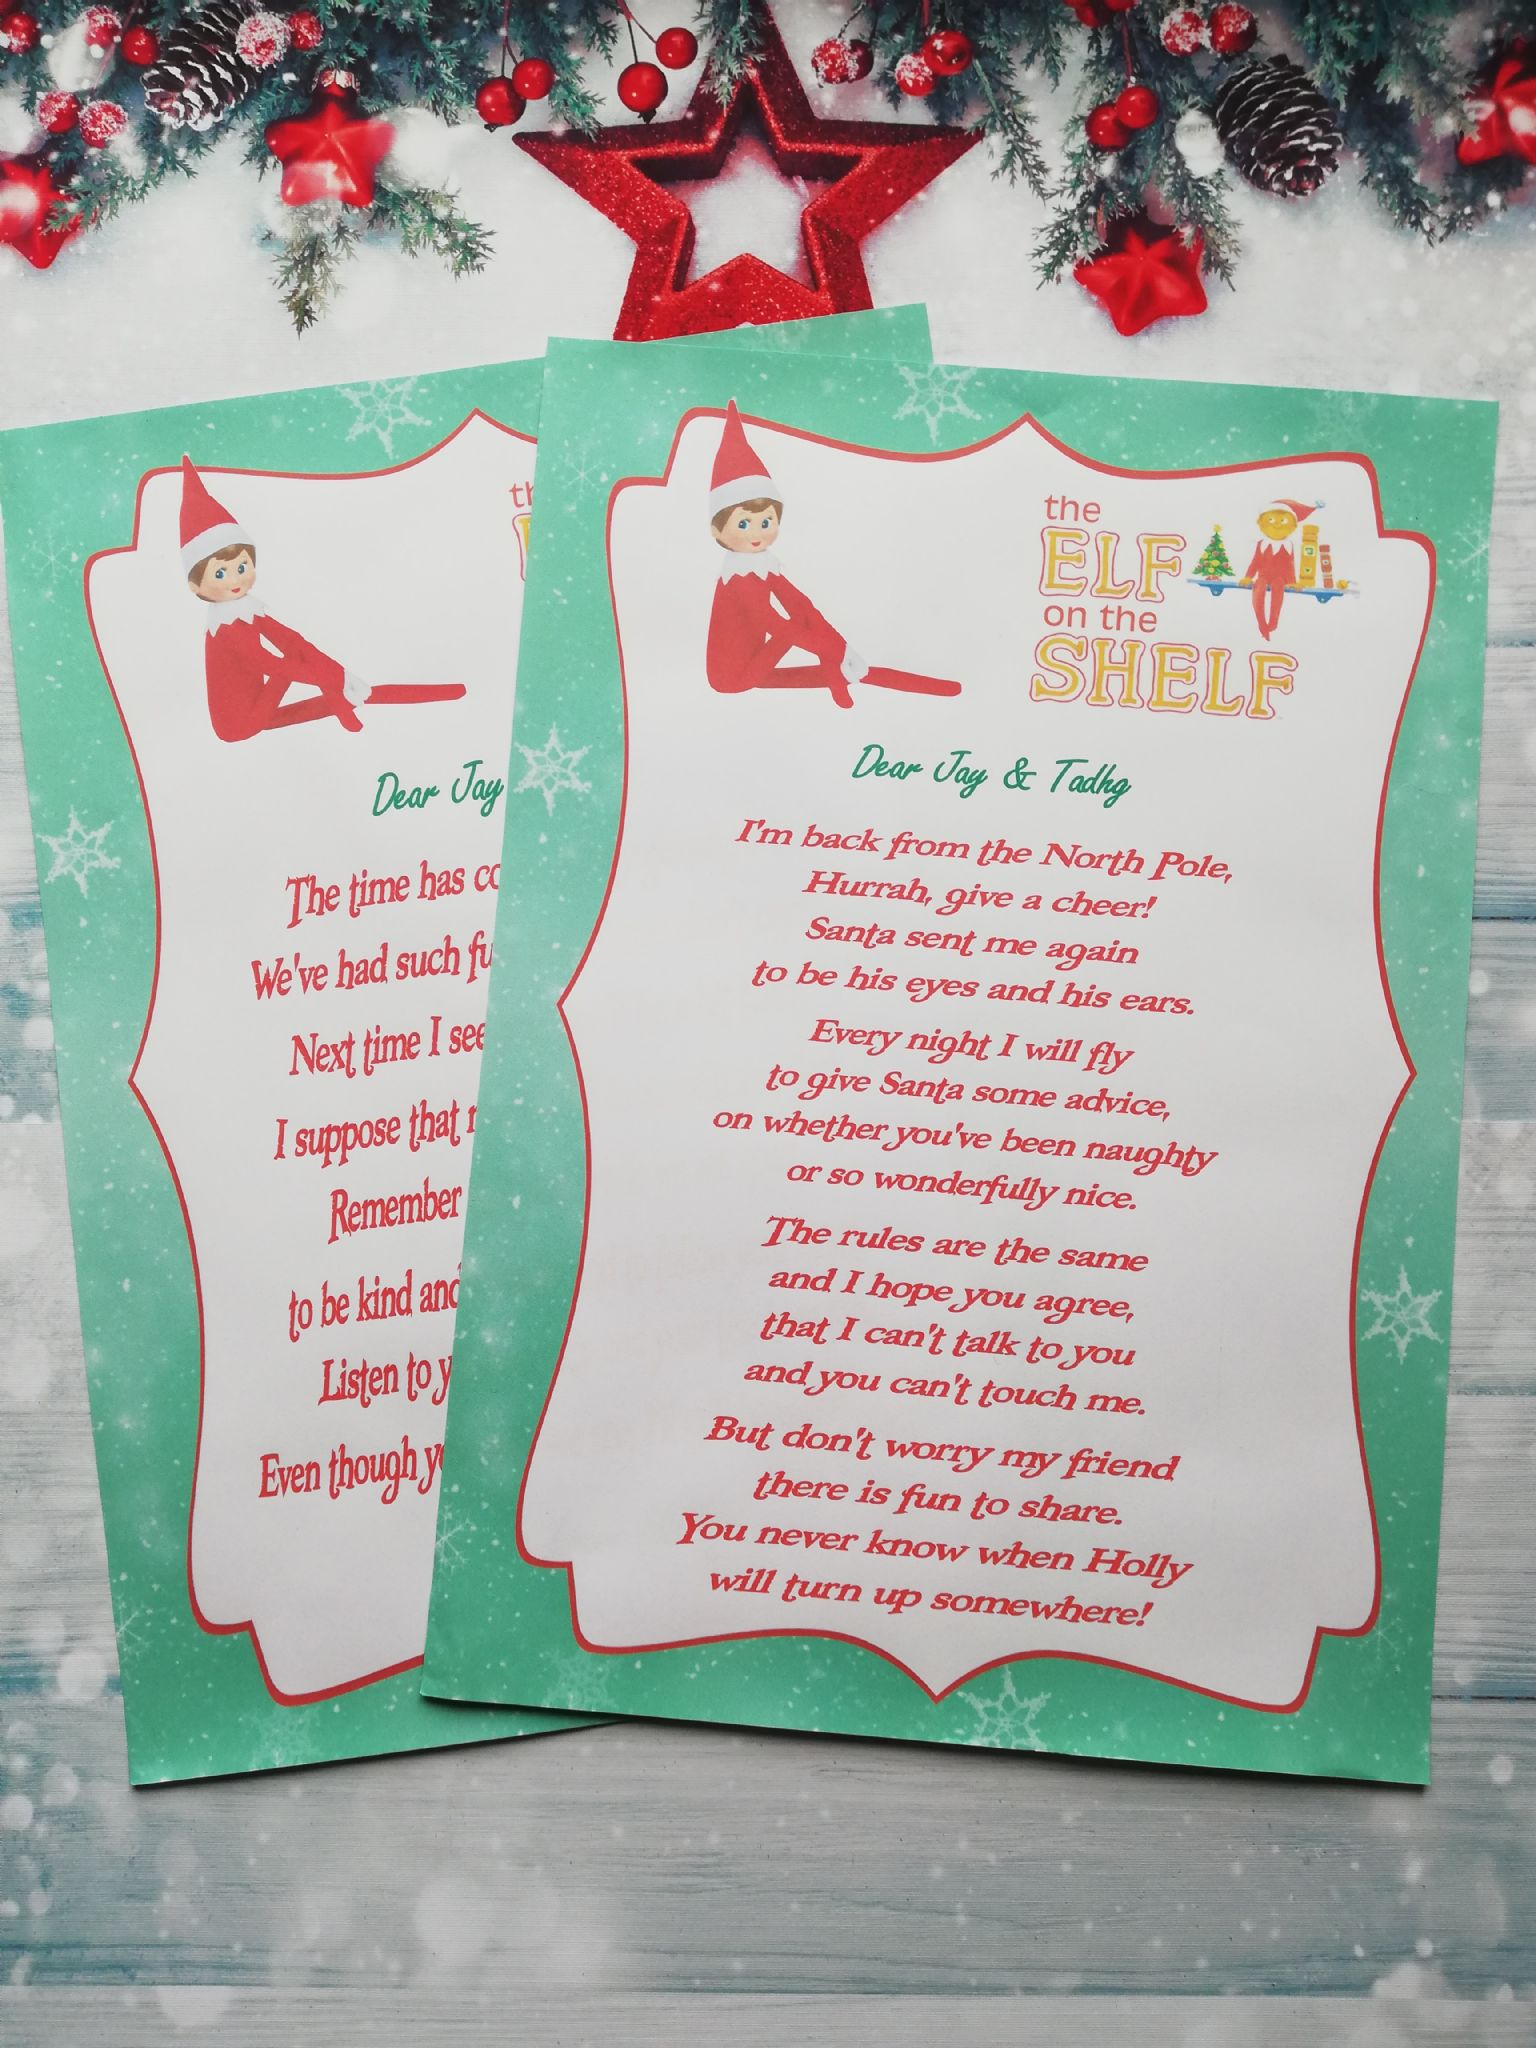 Goodbye Note From Elf On The Shelf Avalonit